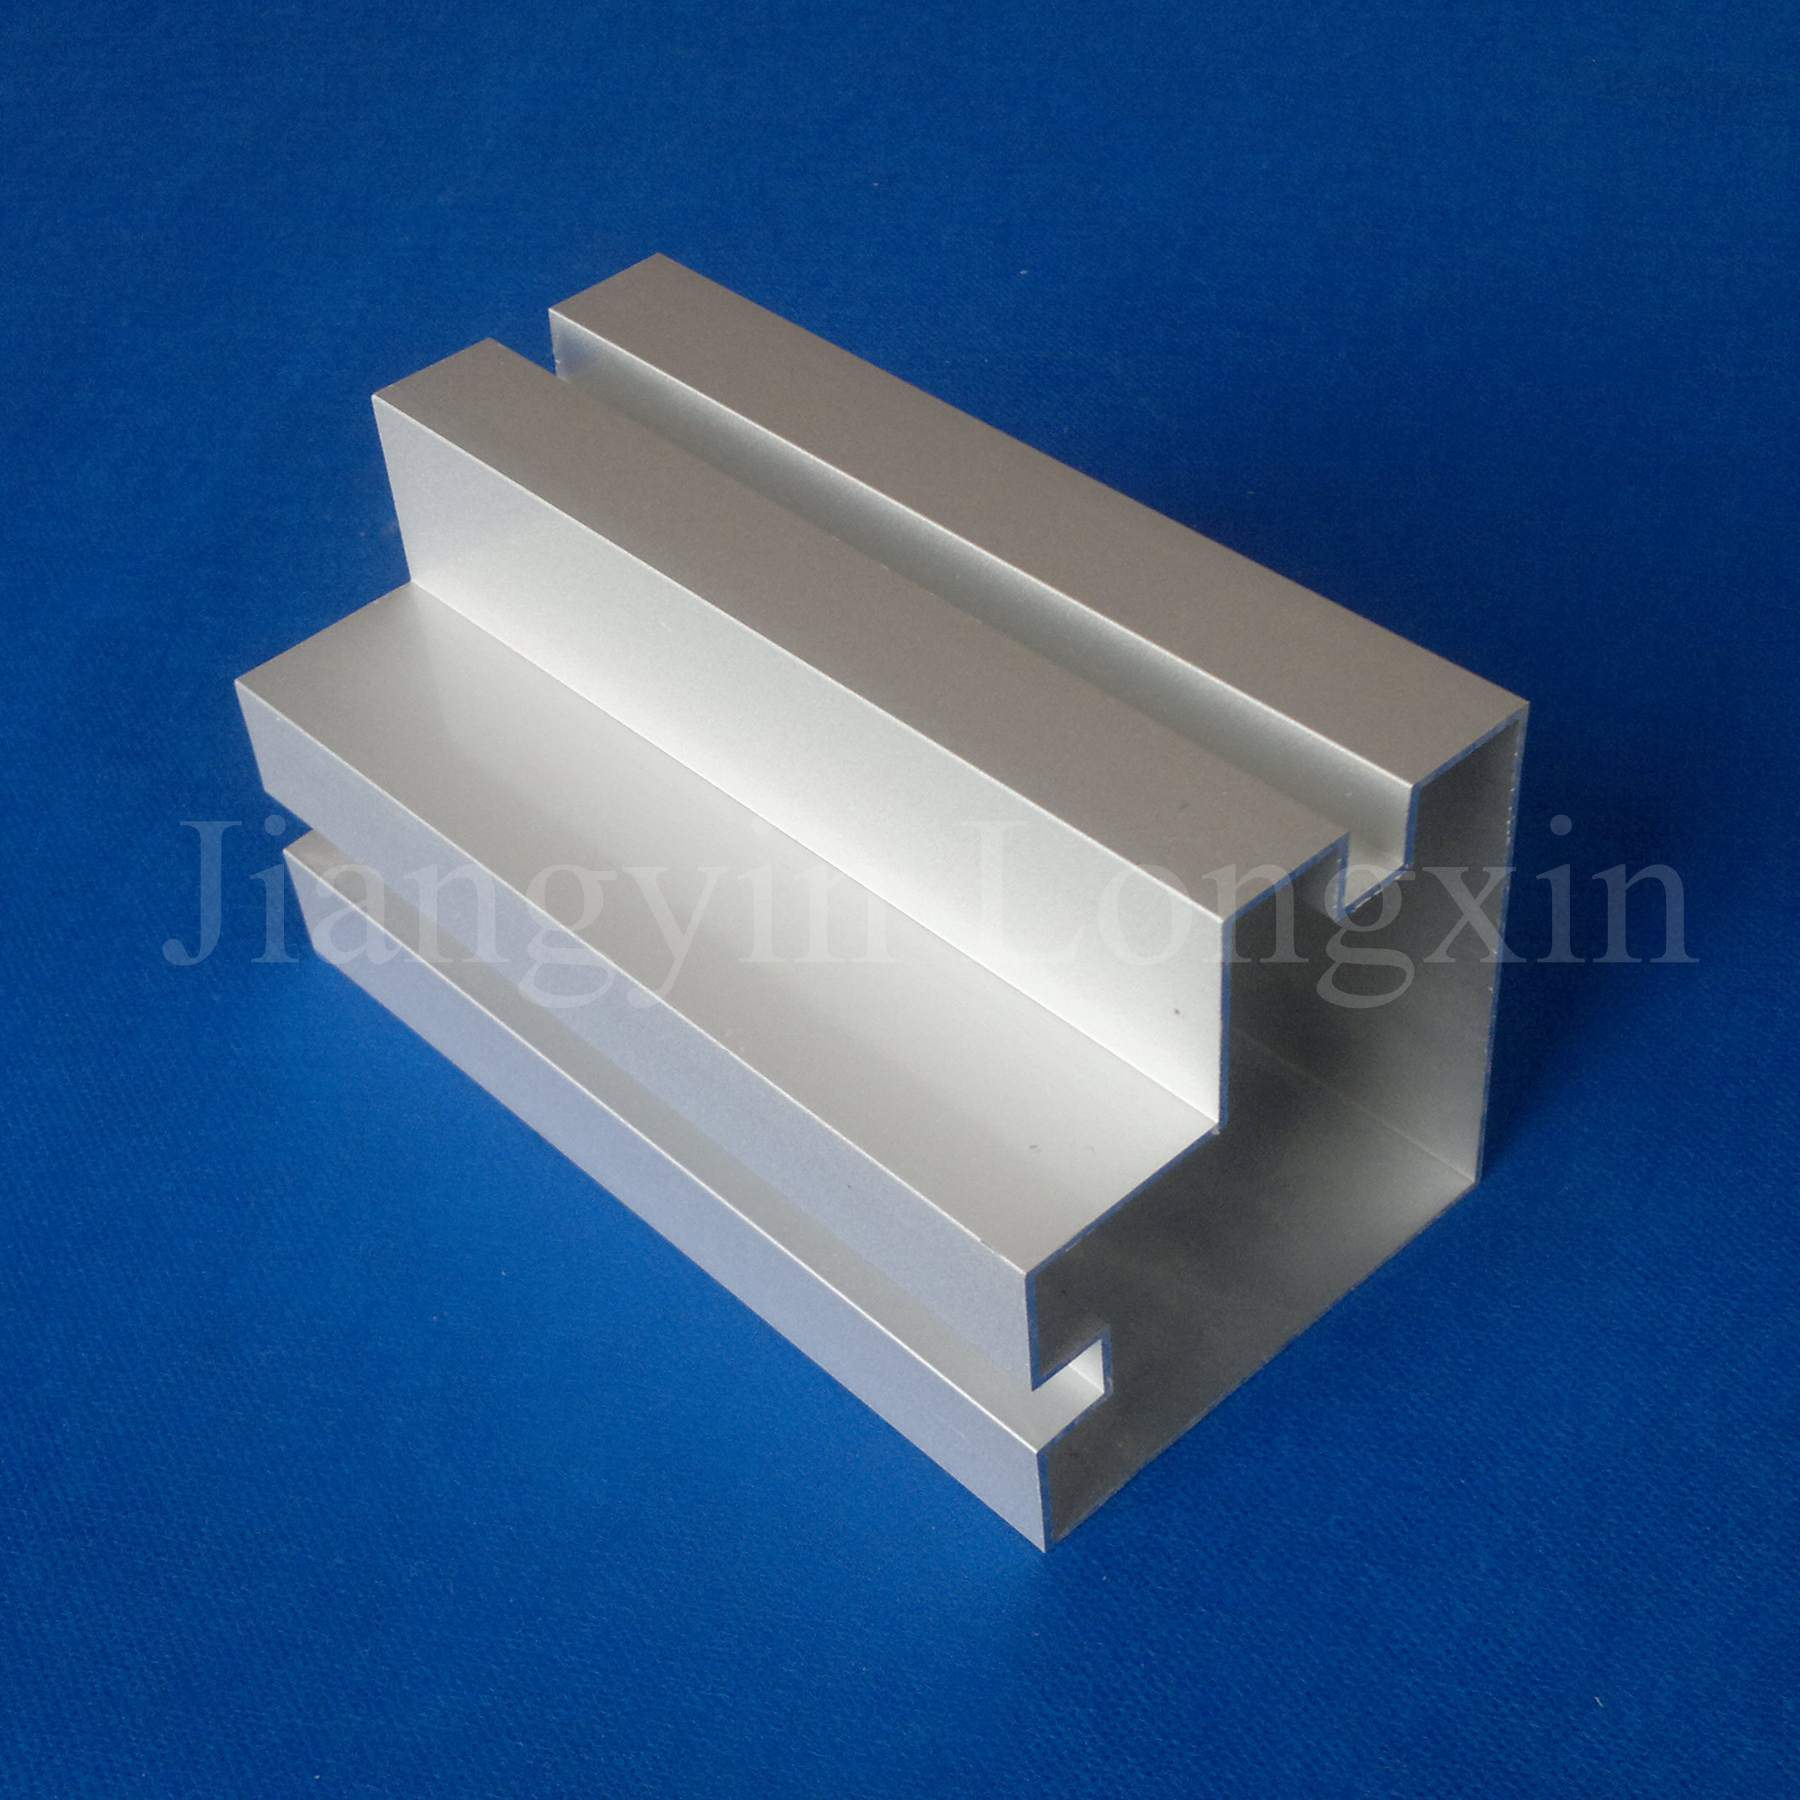 Anodized Aluminum Profile for Door